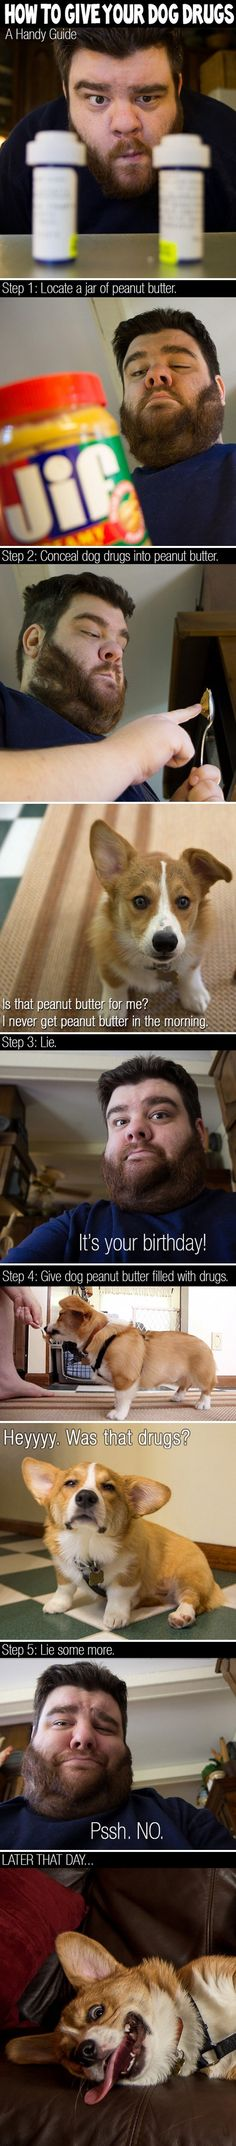 How to give your dog Drungs - Posted in Funny, Troll comics and LOL Images - LOL Heaven